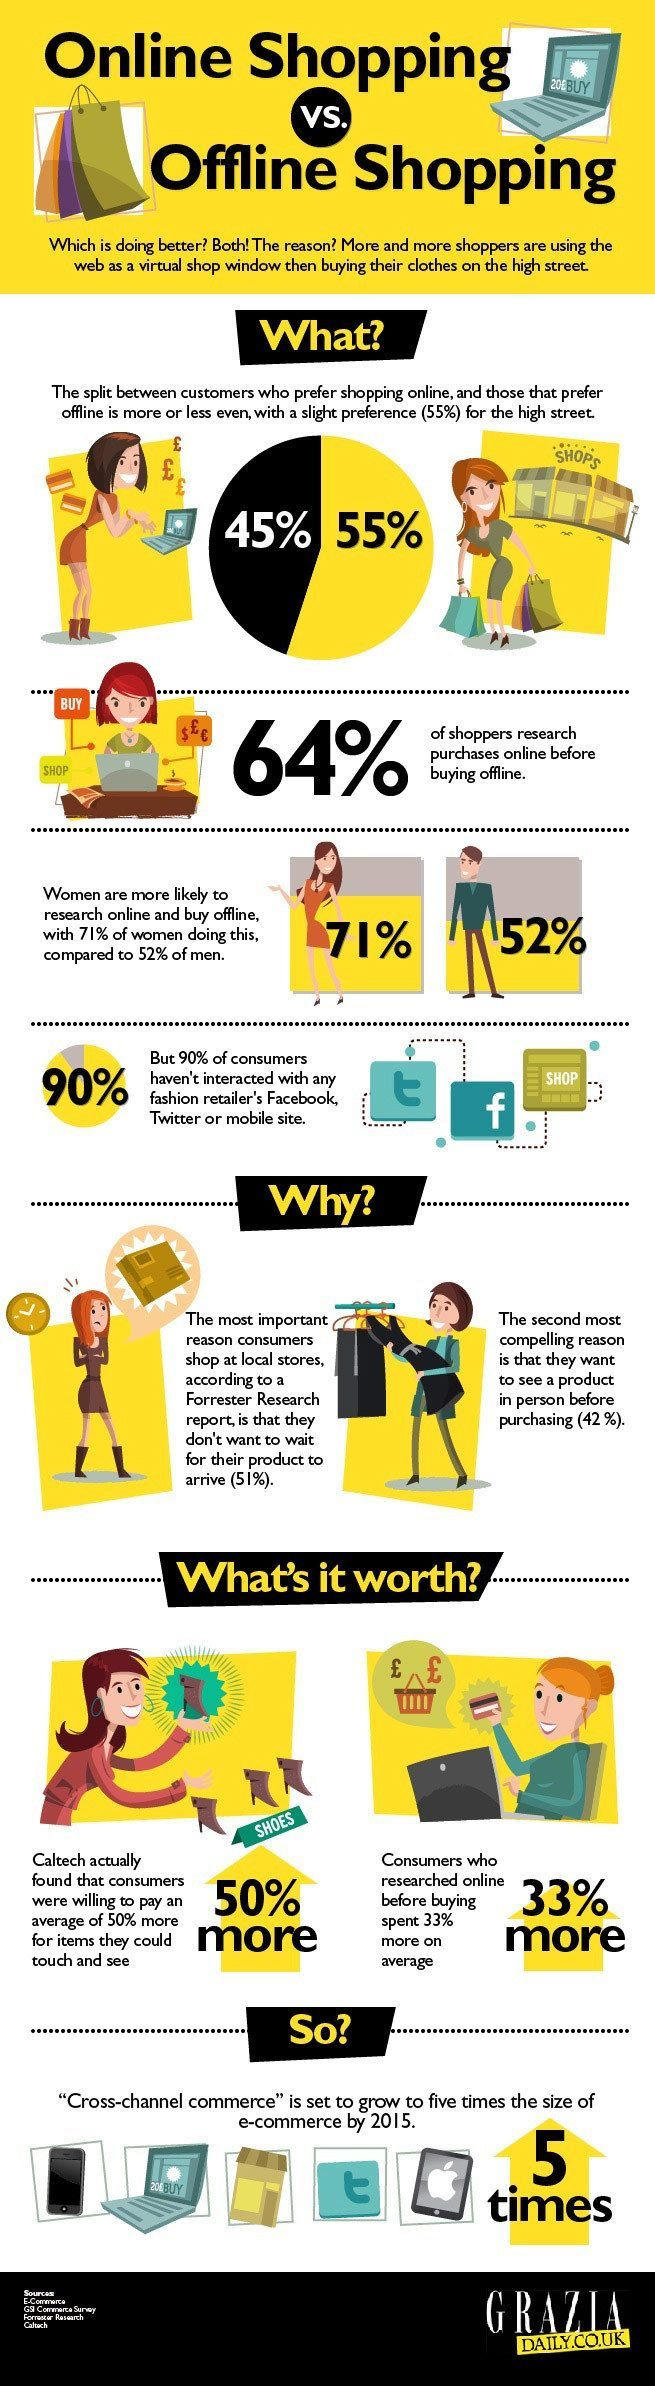 12 Steps To Start Your Online Clothing Store Startup Jungle Shopping Infographic Infographic Ecommerce Marketing